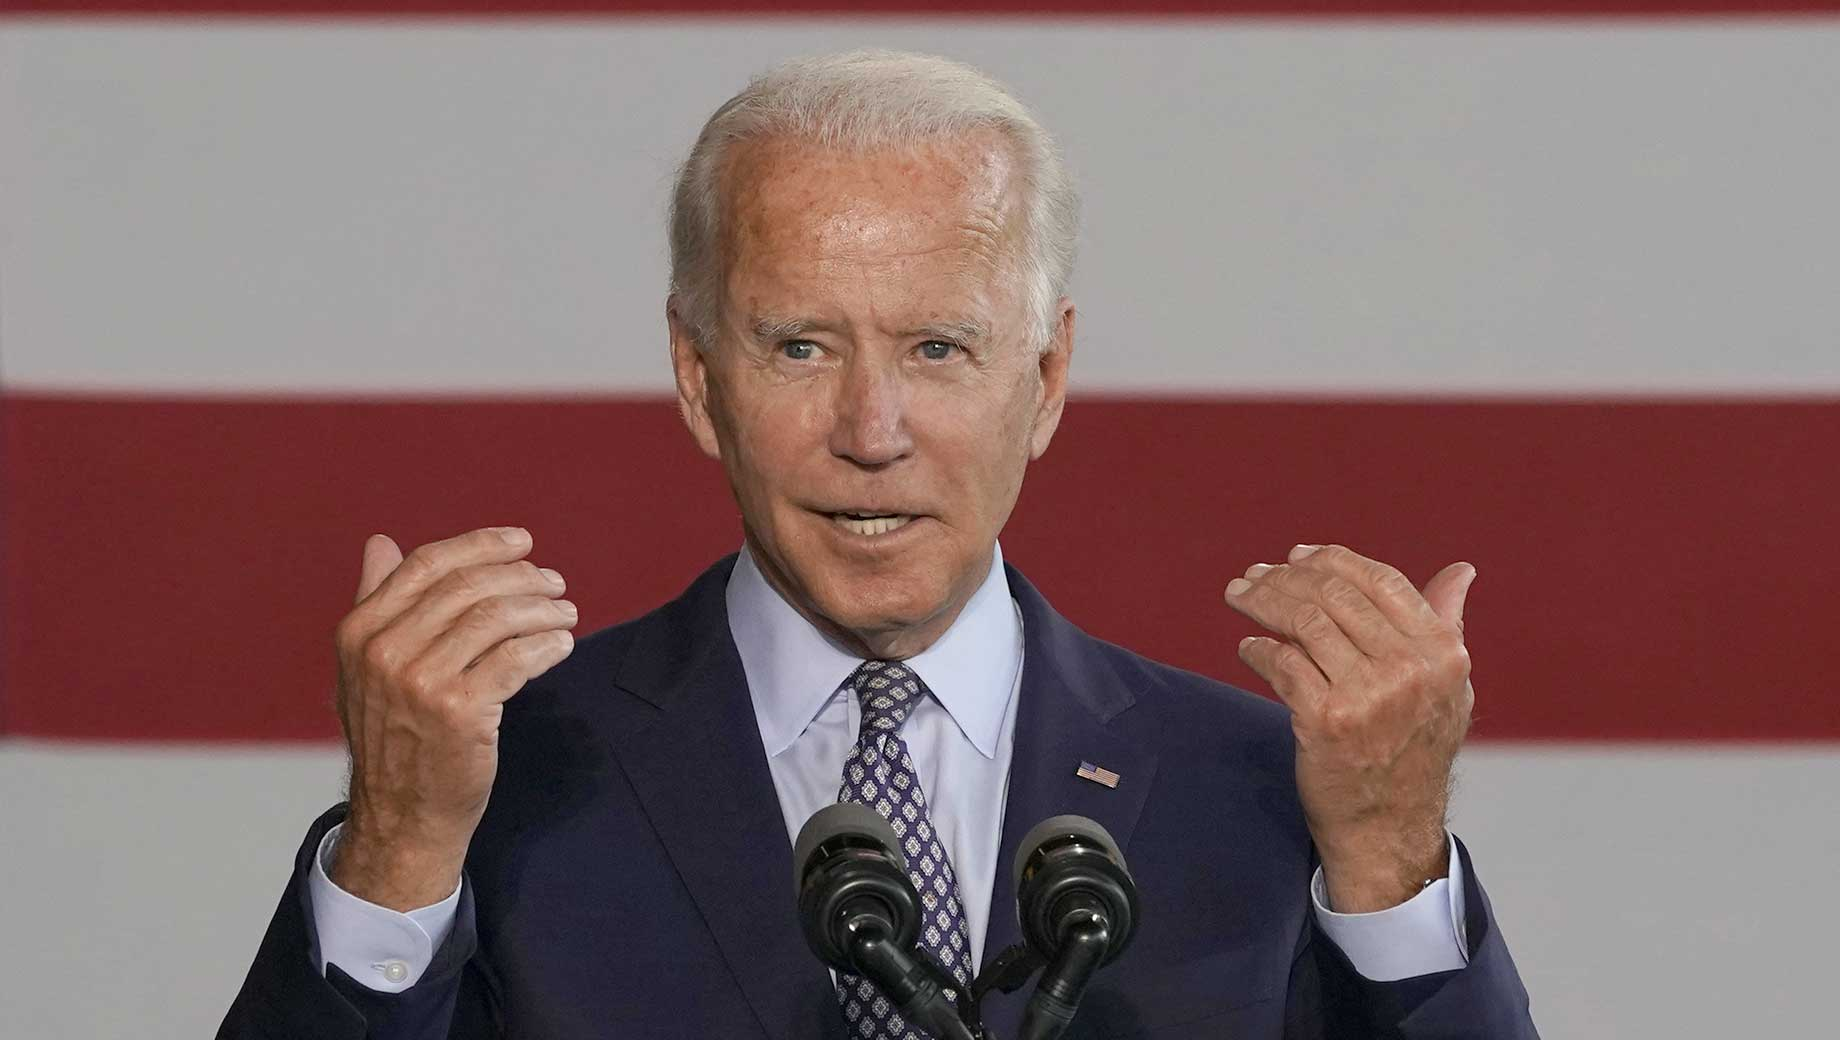 Joe Biden and the Catholic Factor